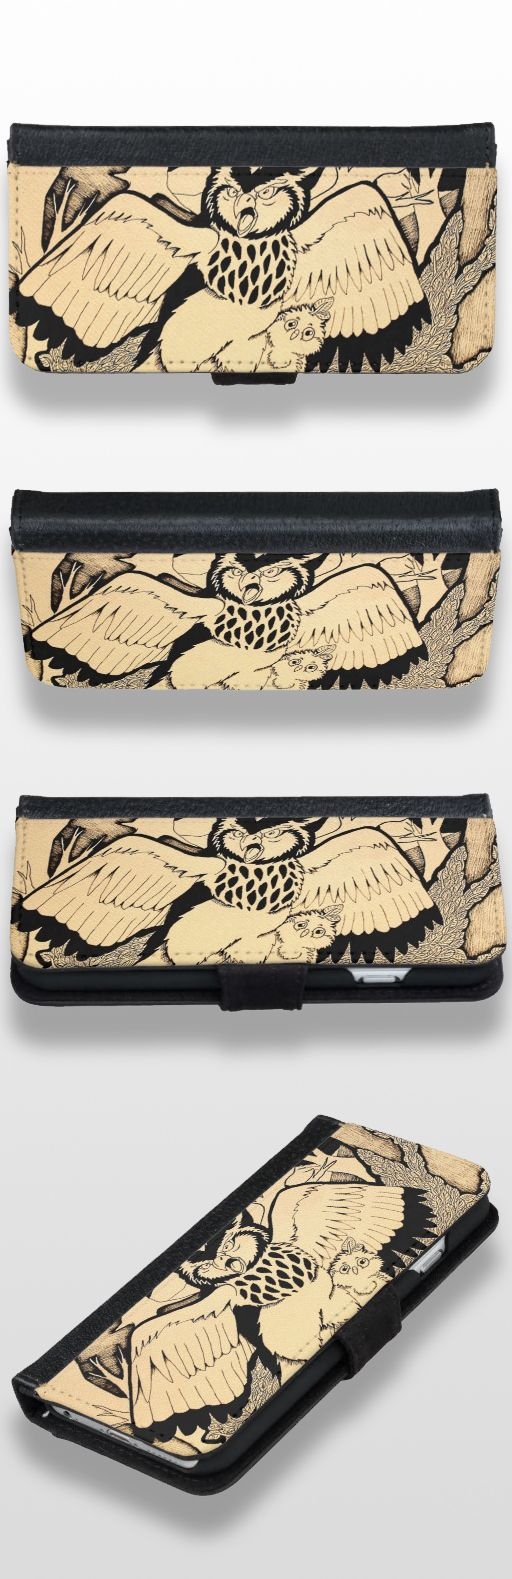 """Owl's Nest"" Black and White Illustrated Wallet Phone Case For iPhone 6/6s  #owl #bird #products #owl_gifts #owl_art #owl_illustration"